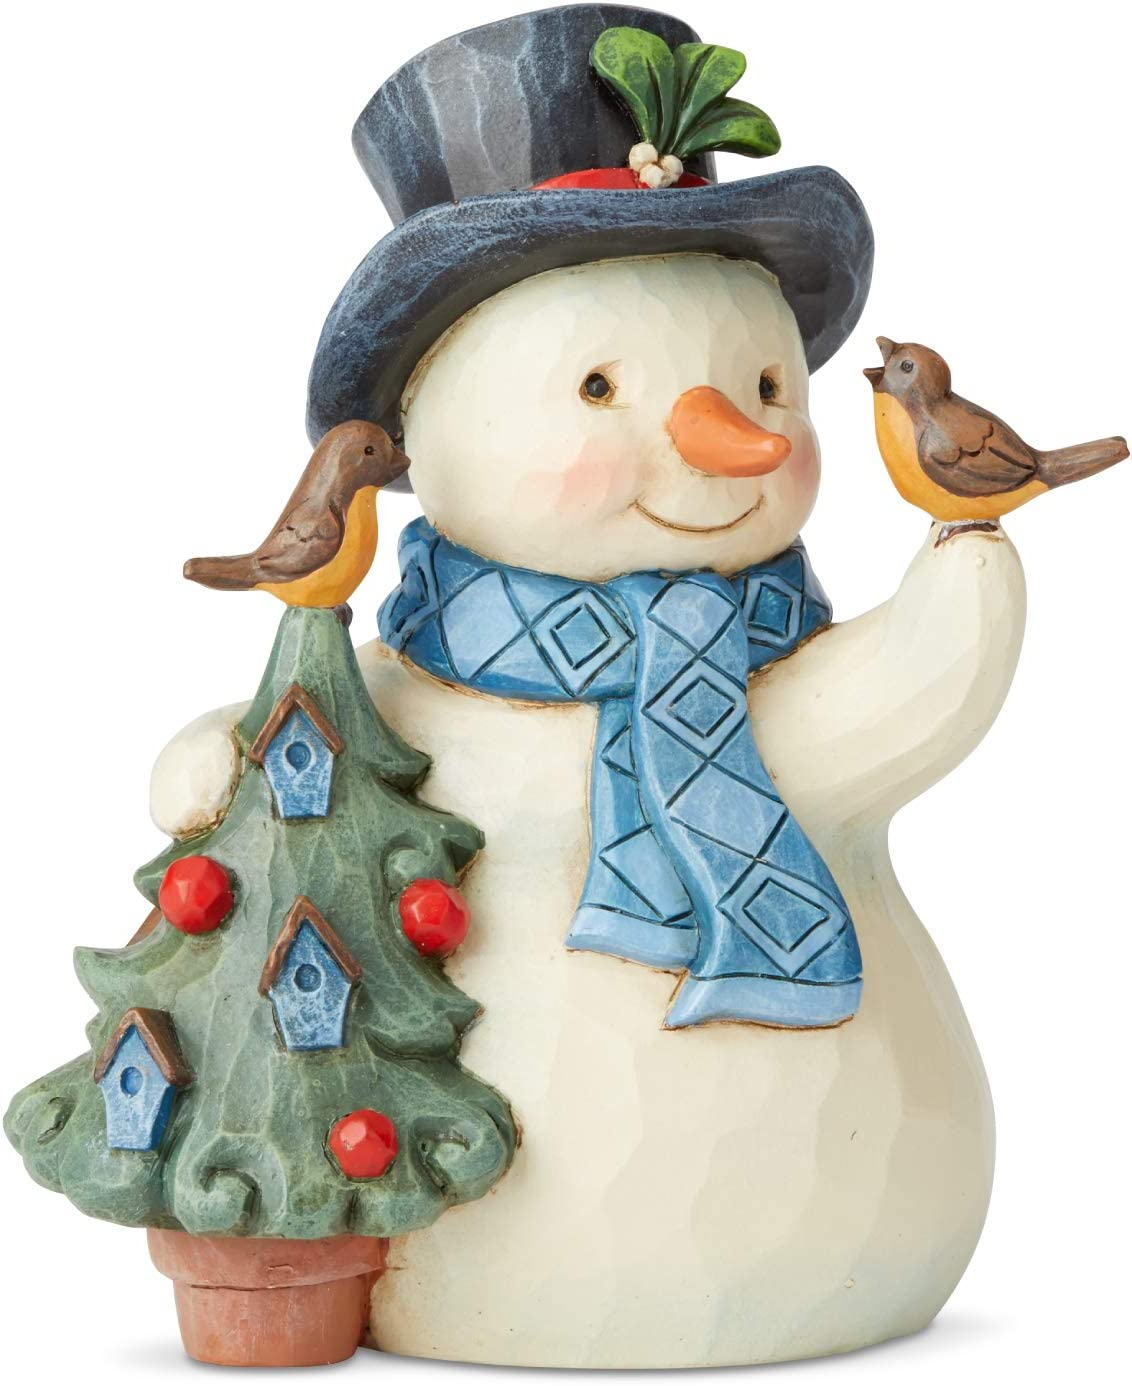 Enesco Jim Shore Heartwood Creek Snowman with Tree and Birds Pint-Size Figurine, 5 Inch, Multicolor